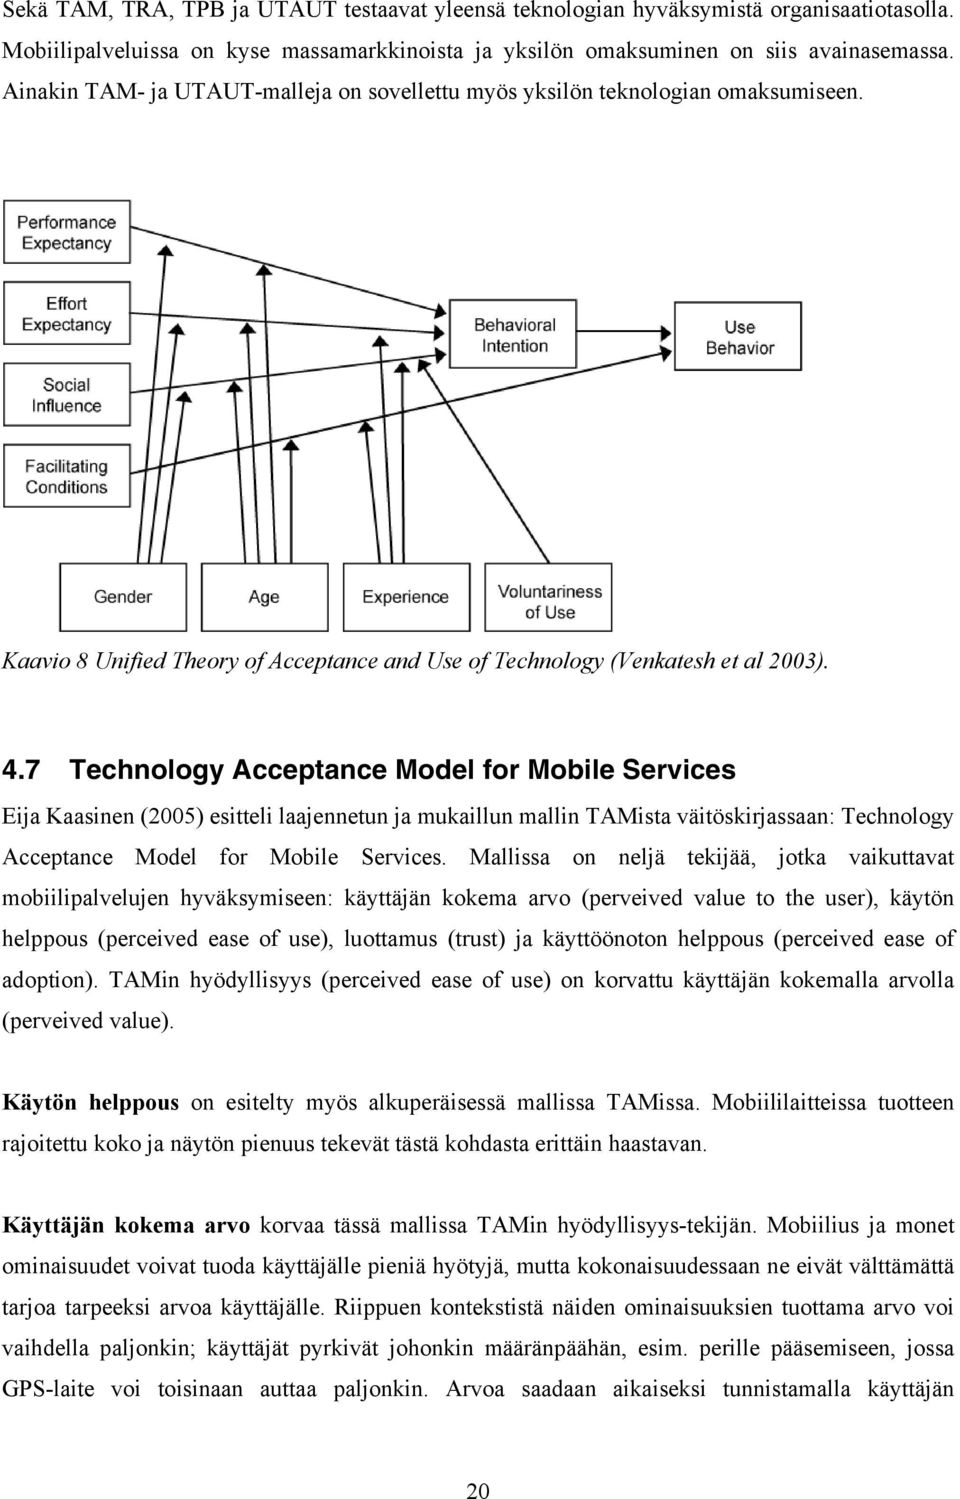 7 Technology Acceptance Model for Mobile Services Eija Kaasinen (2005) esitteli laajennetun ja mukaillun mallin TAMista väitöskirjassaan: Technology Acceptance Model for Mobile Services.